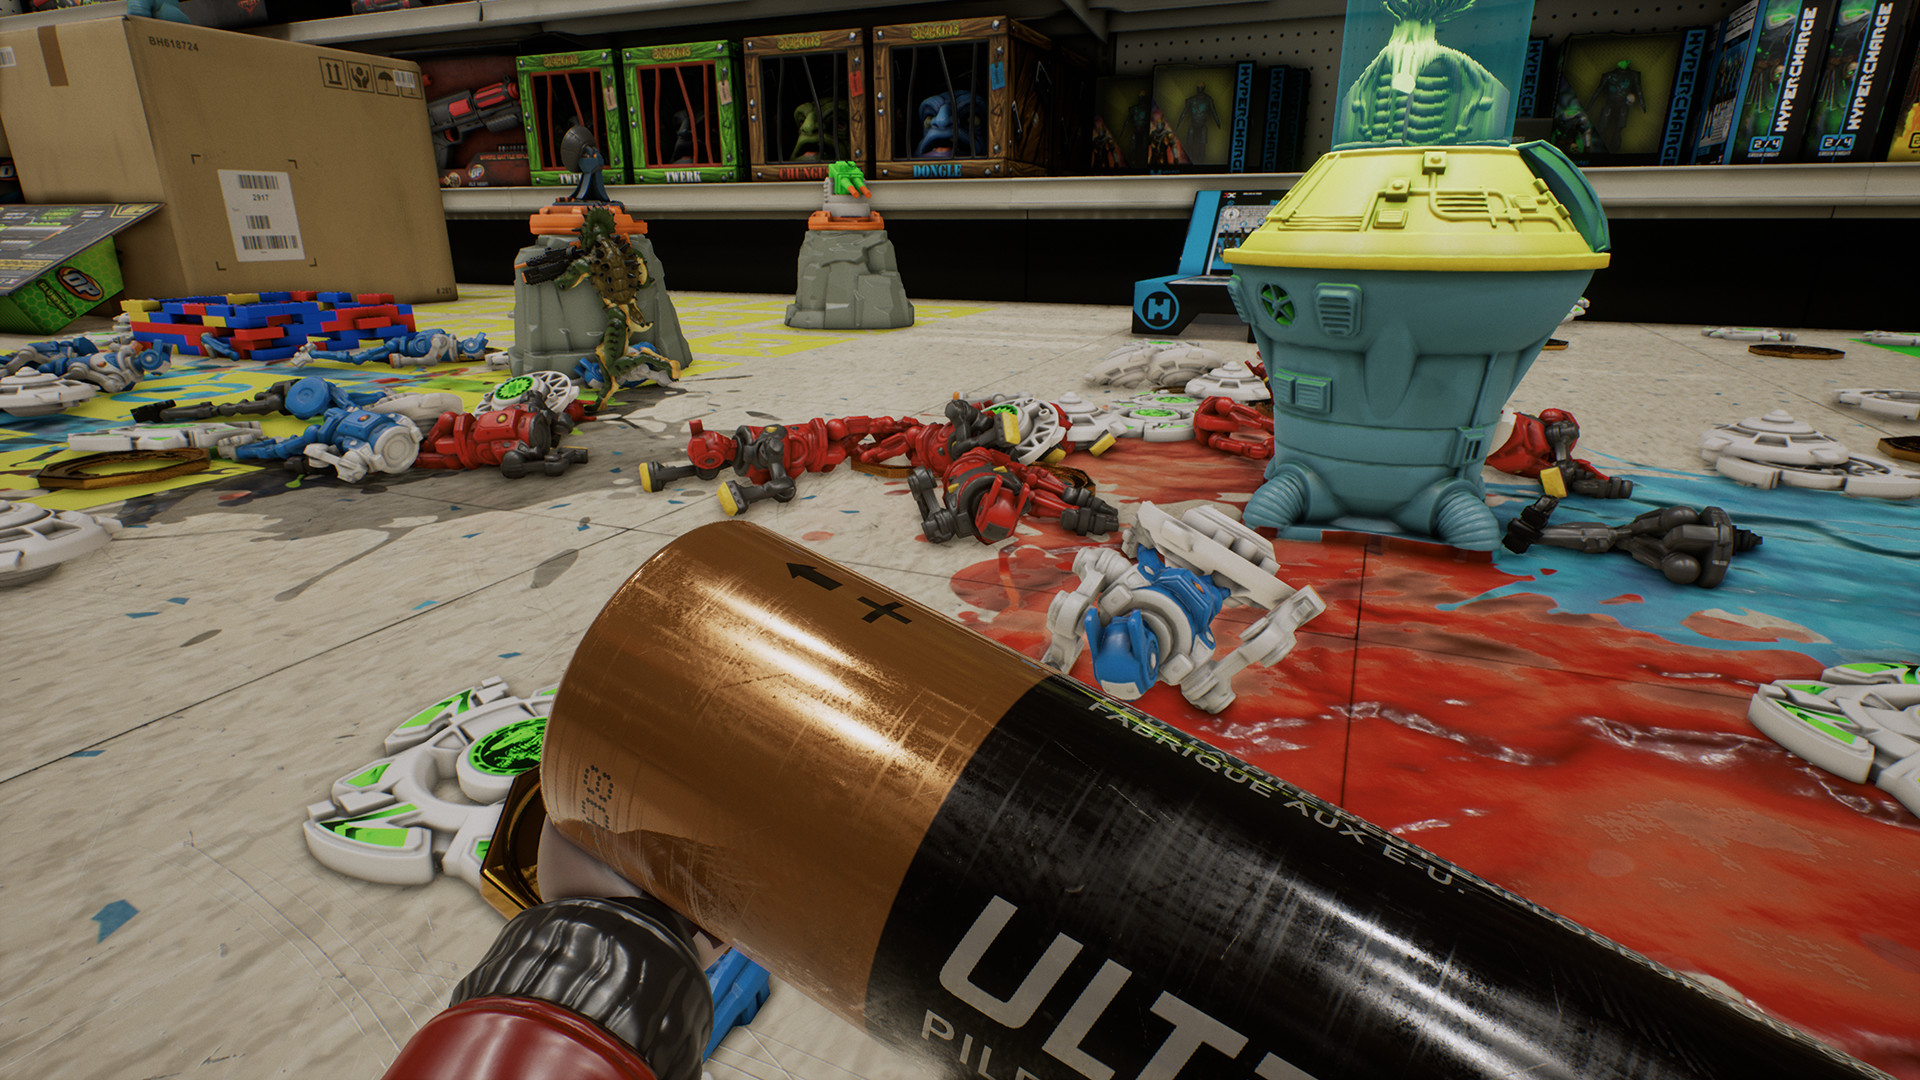 HYPERCHARGE: Unboxed returns in Early Access 2.0 this week